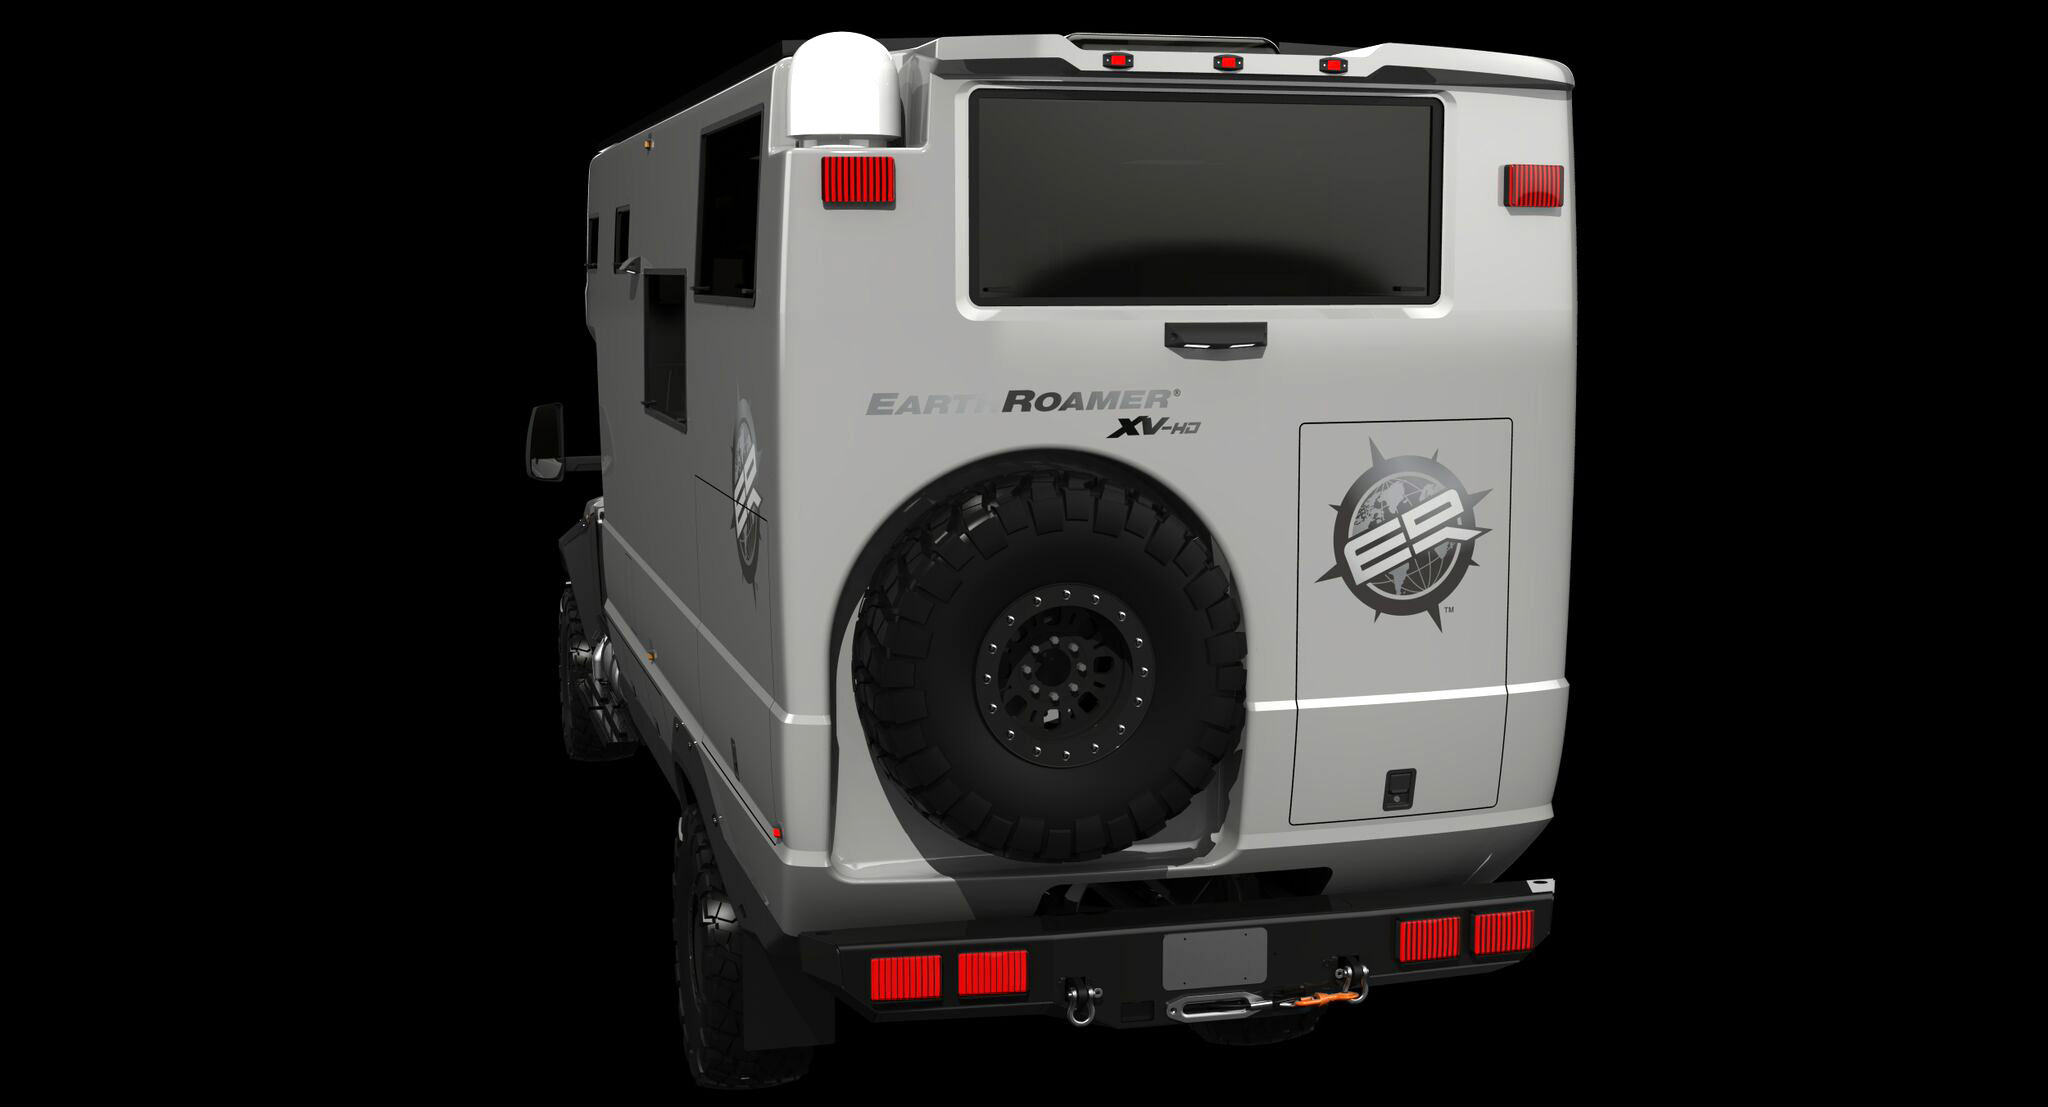 Looking for an extra special RV? Check out EarthRoamer